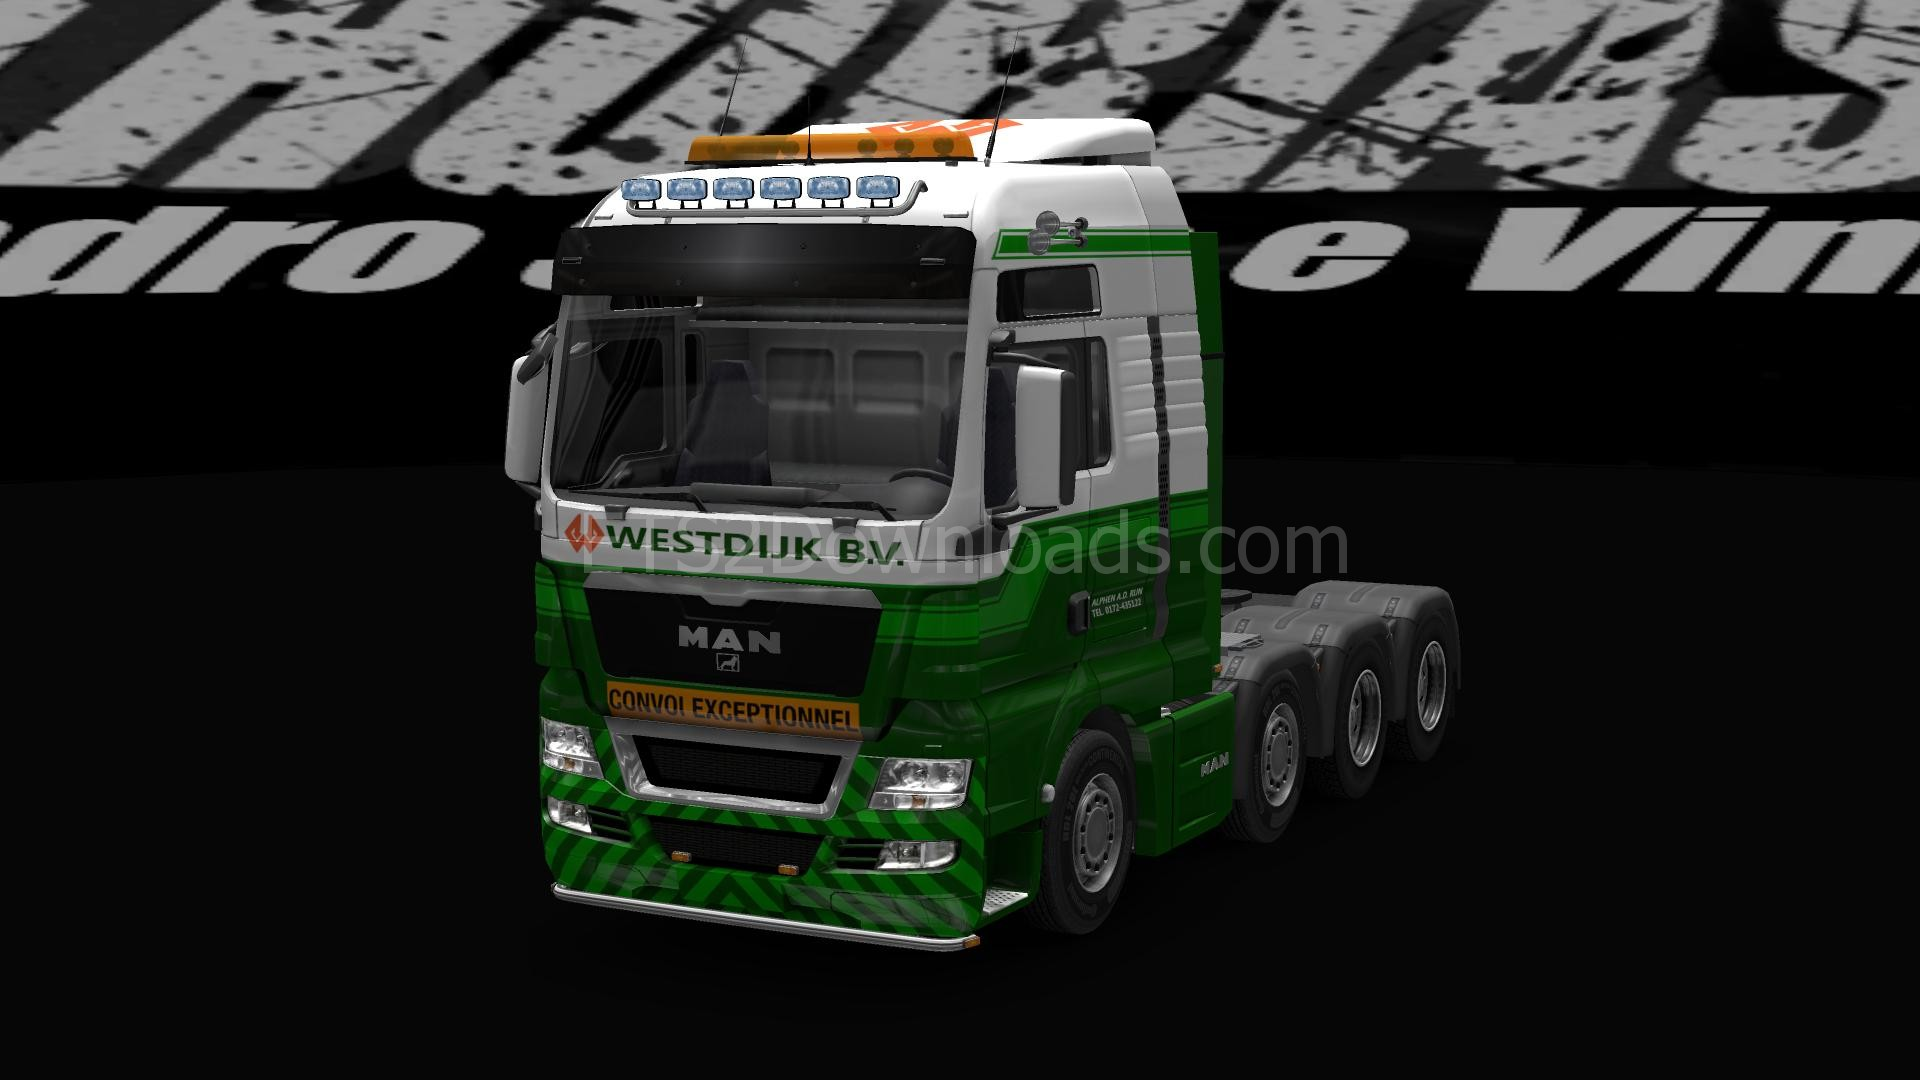 westdijk-bv-skin-for-man-ets2